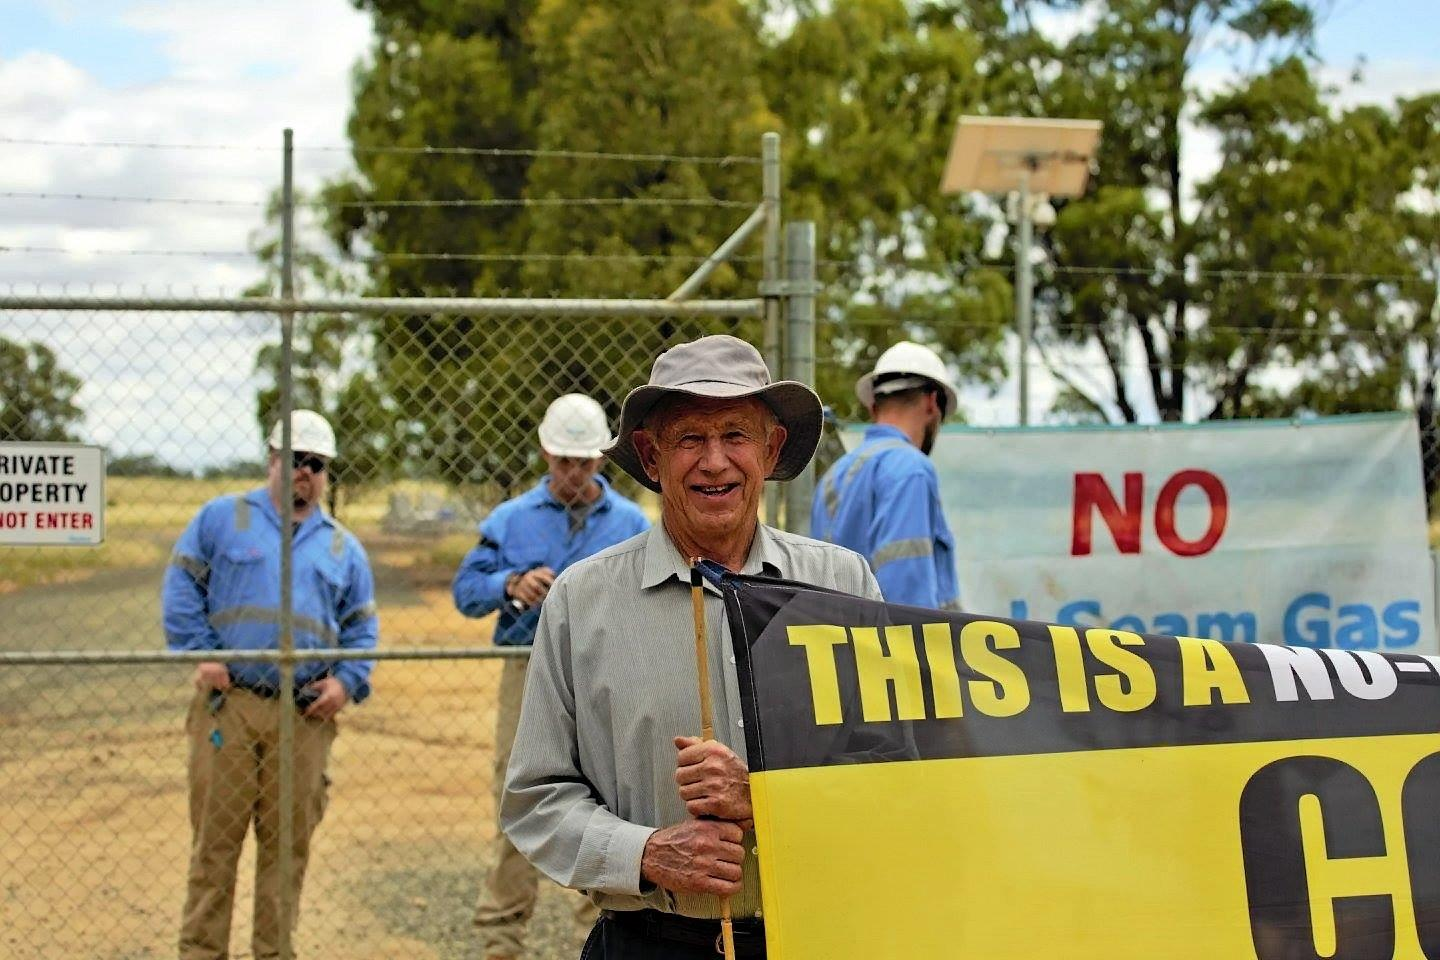 Santos coal seam gas mining operation at Pilliga, North West NSW.